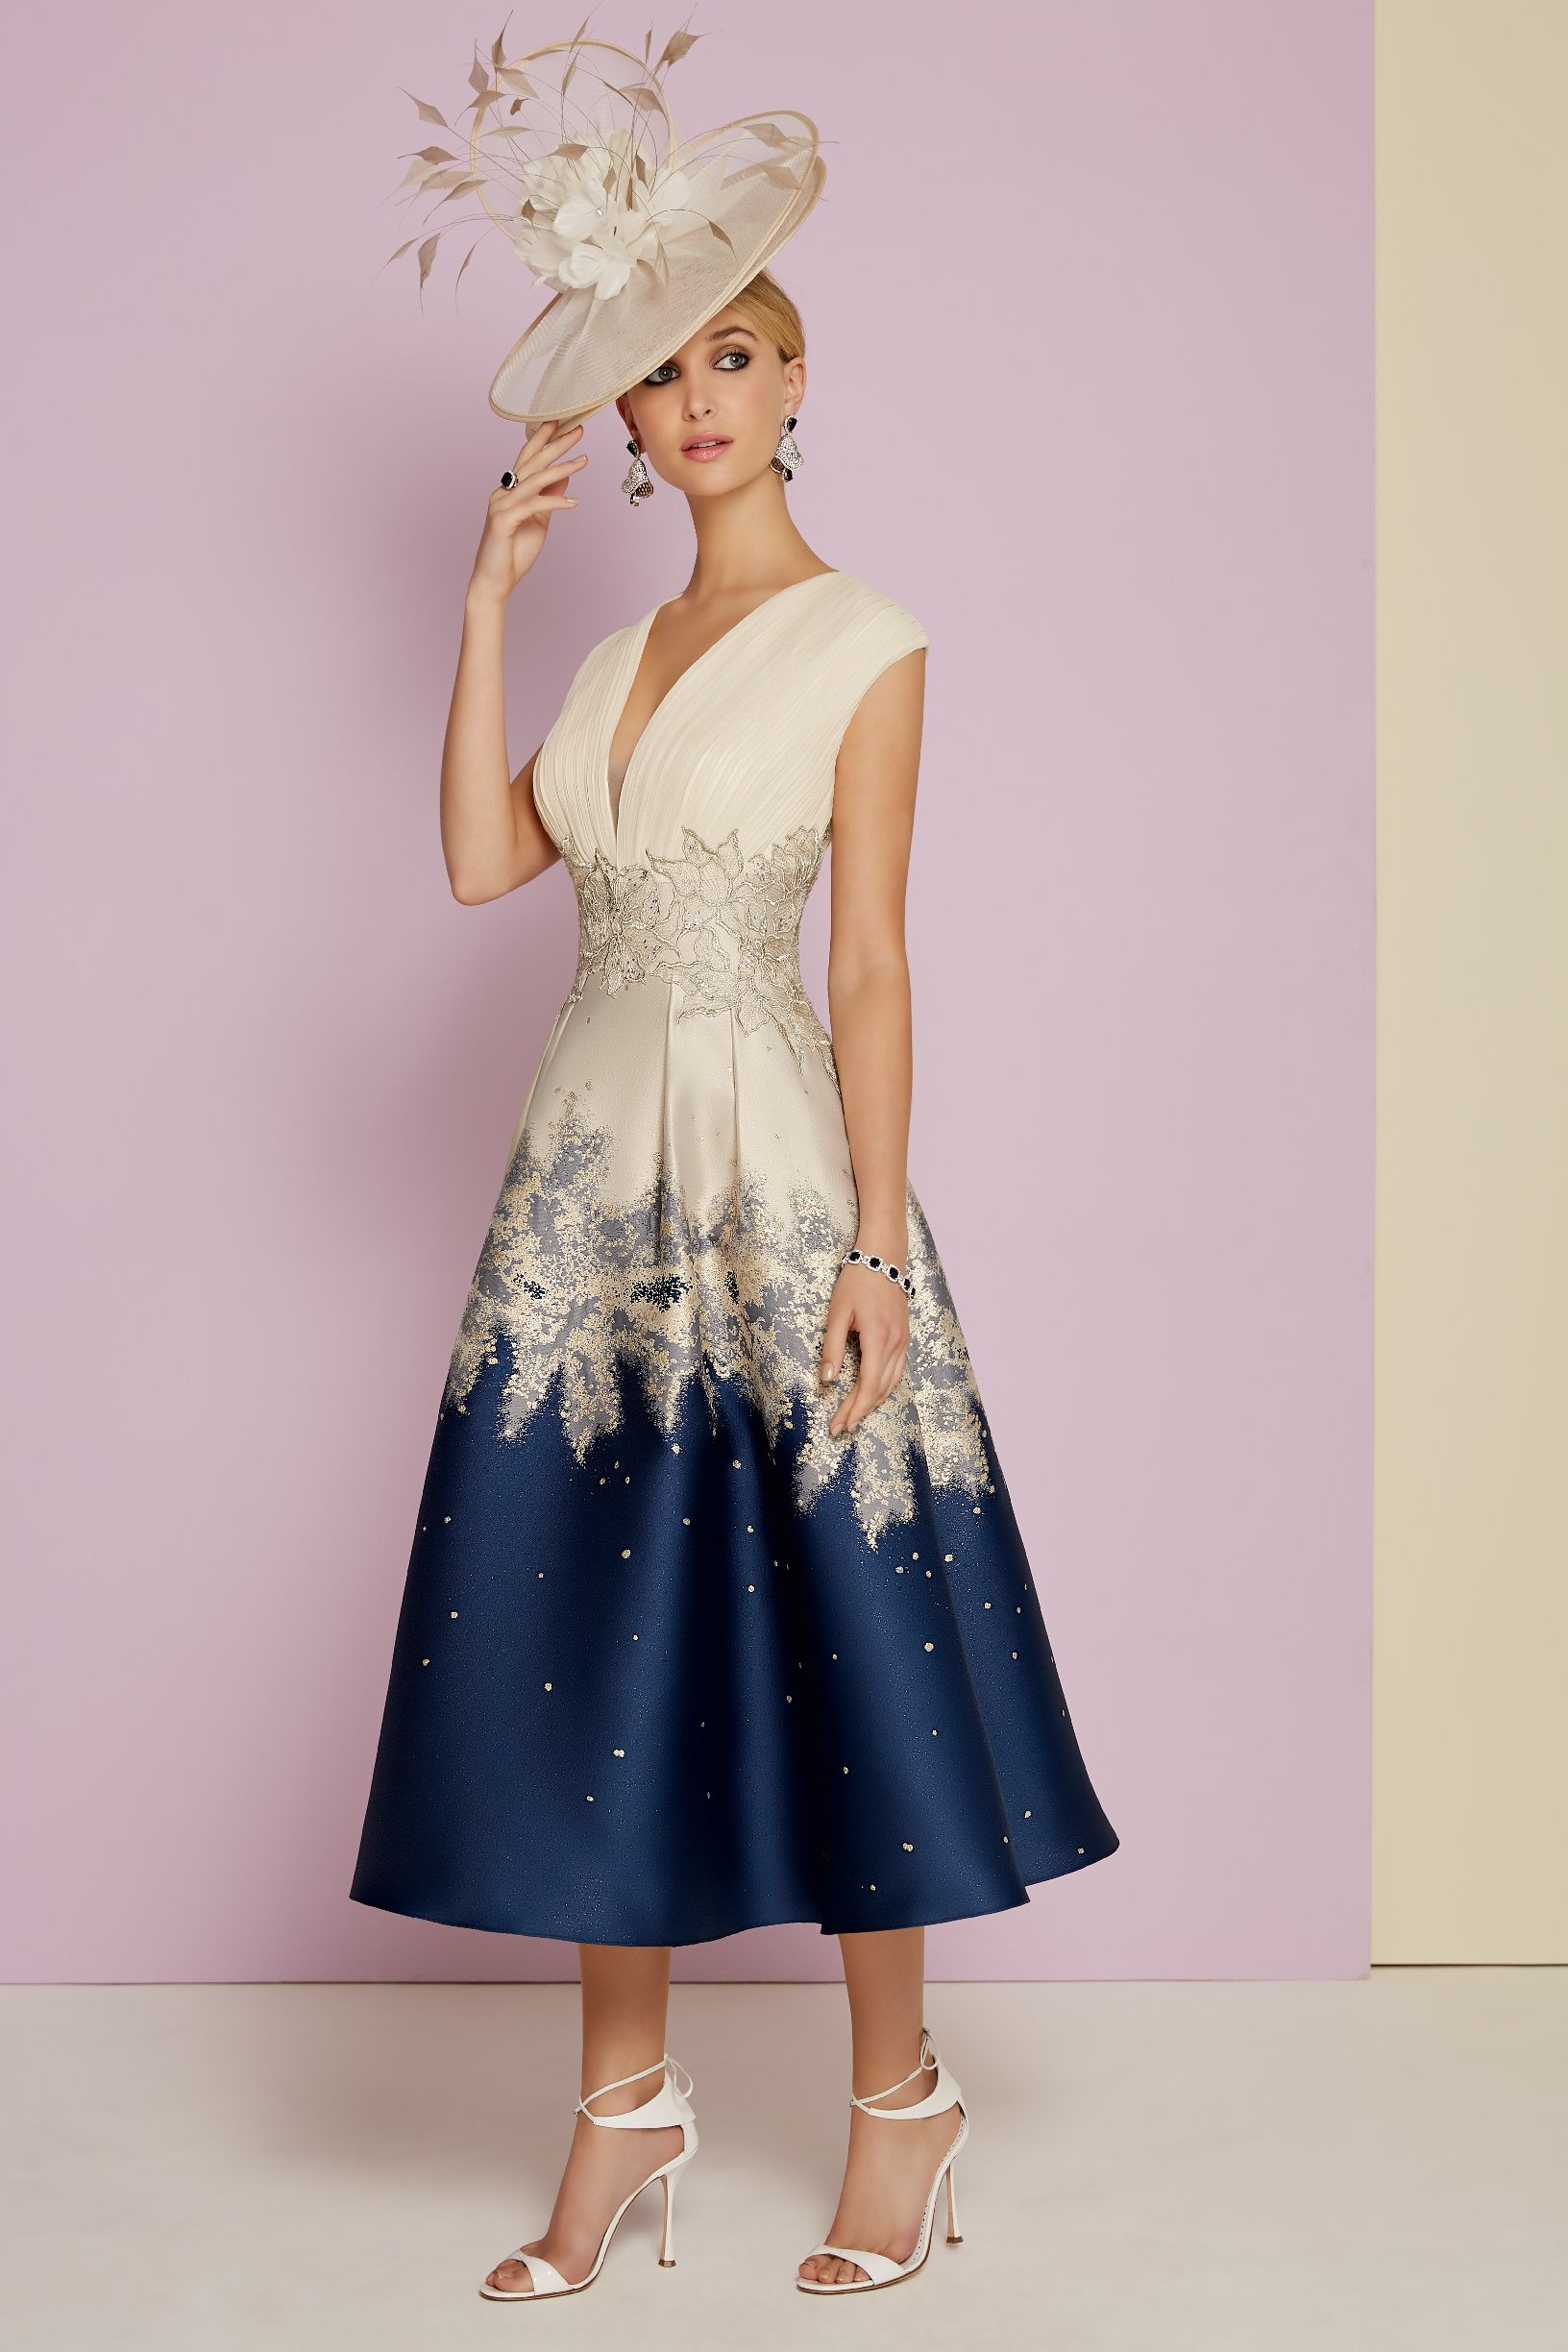 Elegant Embroidery Bridesmaid's Gown Tulle Floral Wedding Costume Lace Fabric 1Y